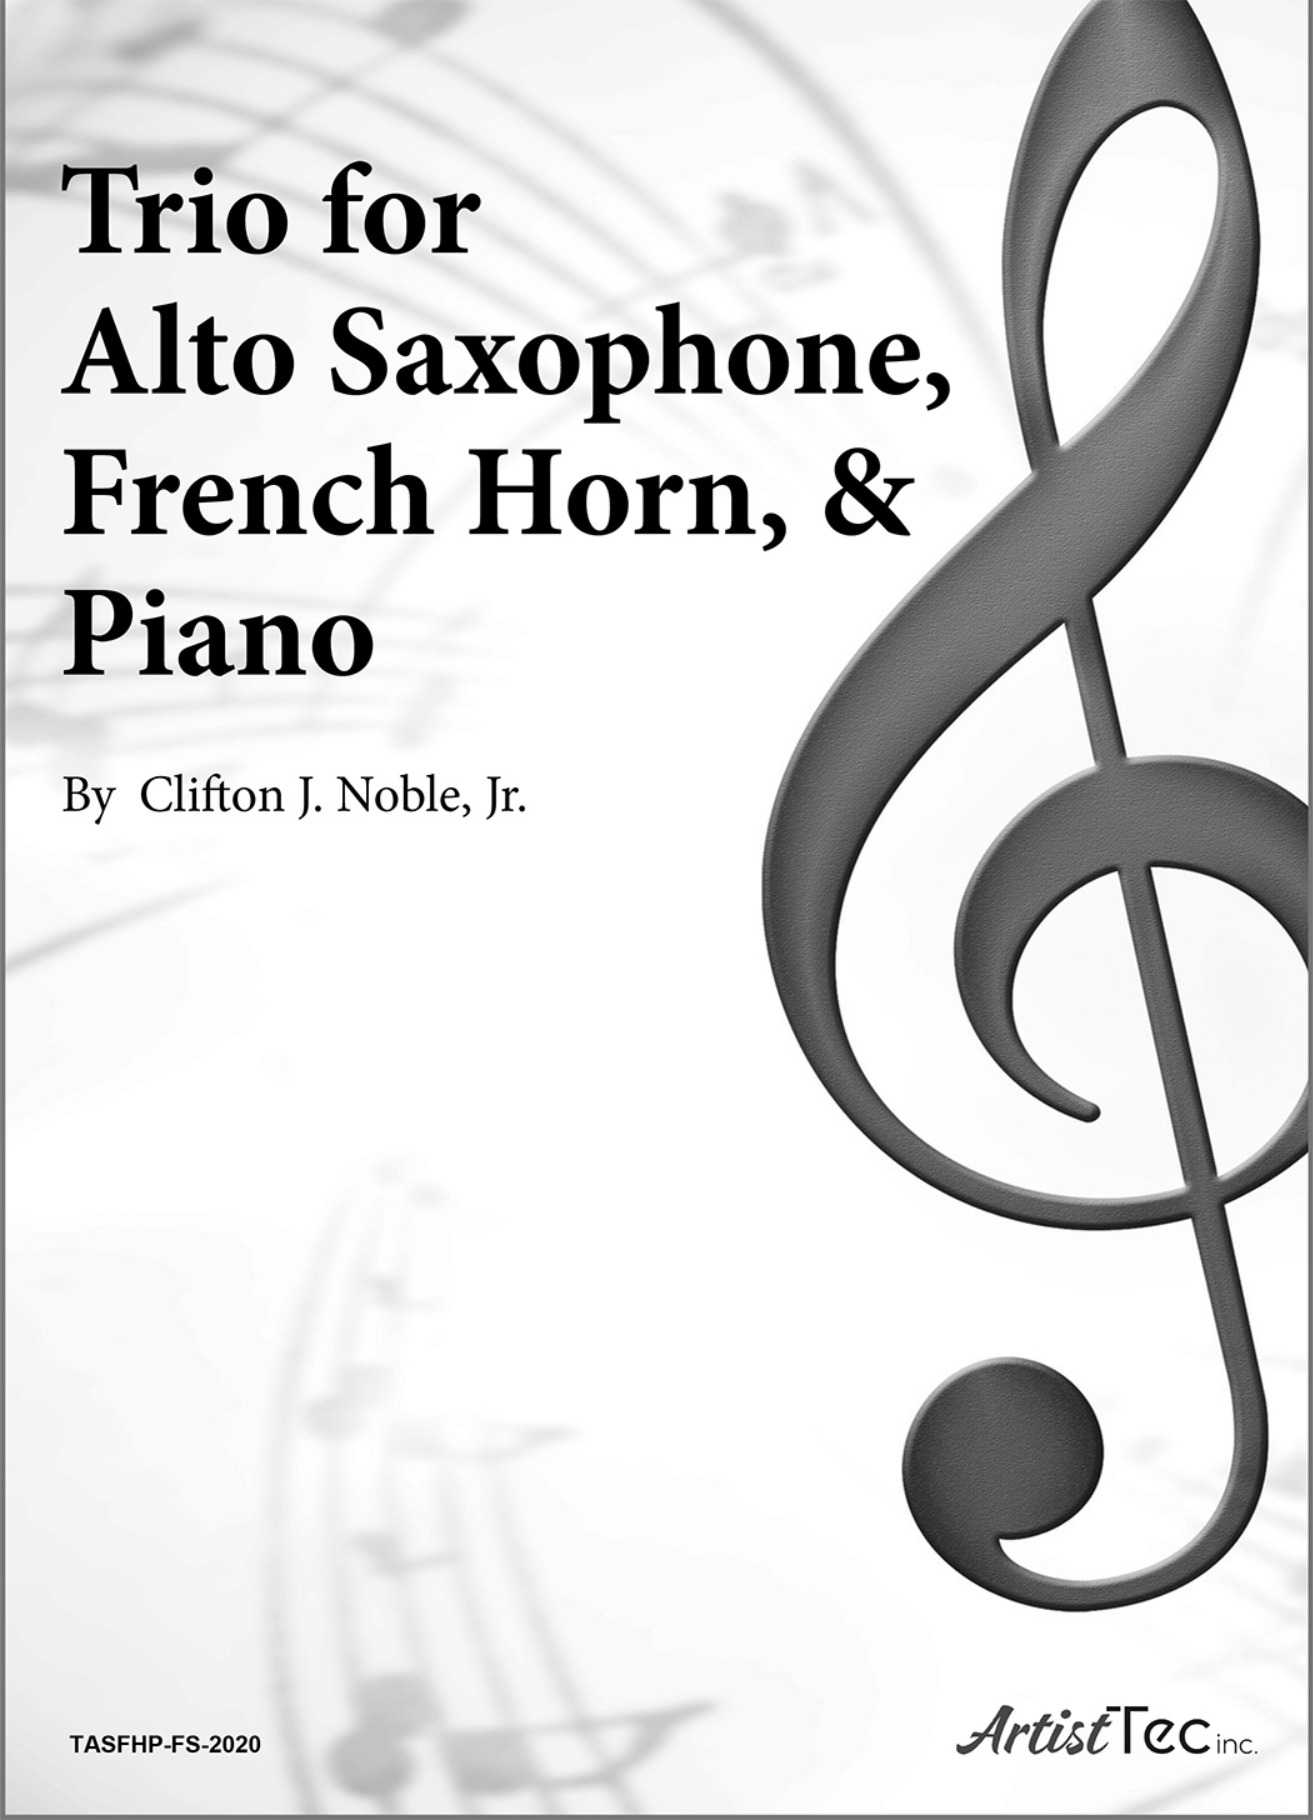 Trio for Alto Saxophone, French Horn, and Piano